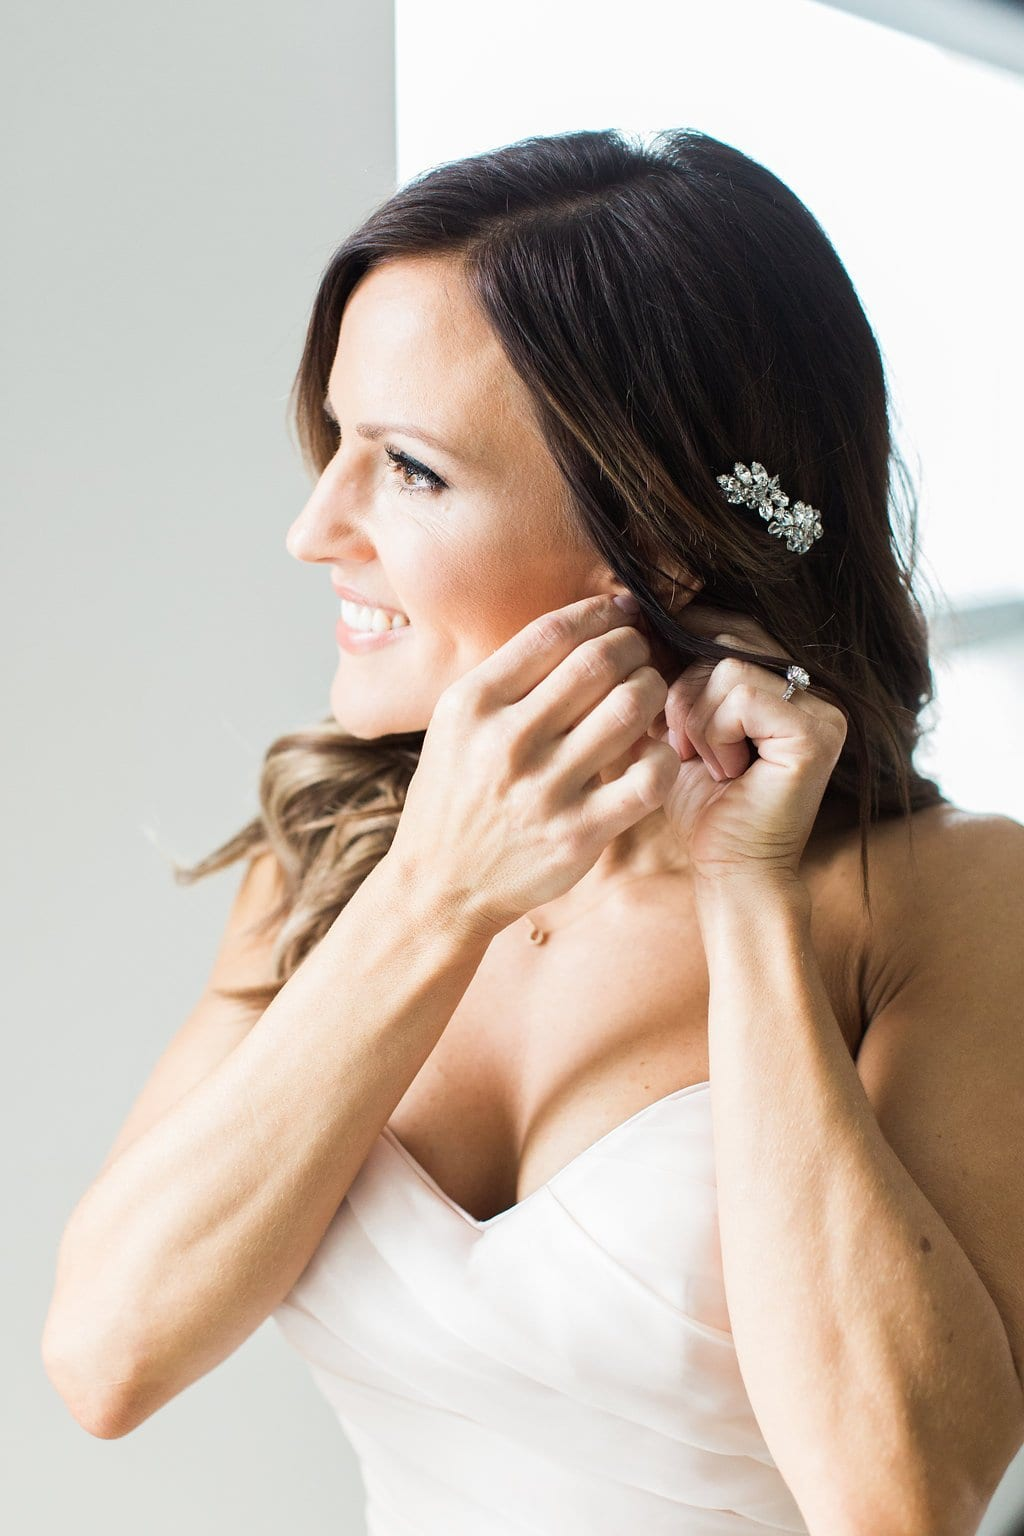 Photograph of the bride putting on her jewelry and earrings while getting ready